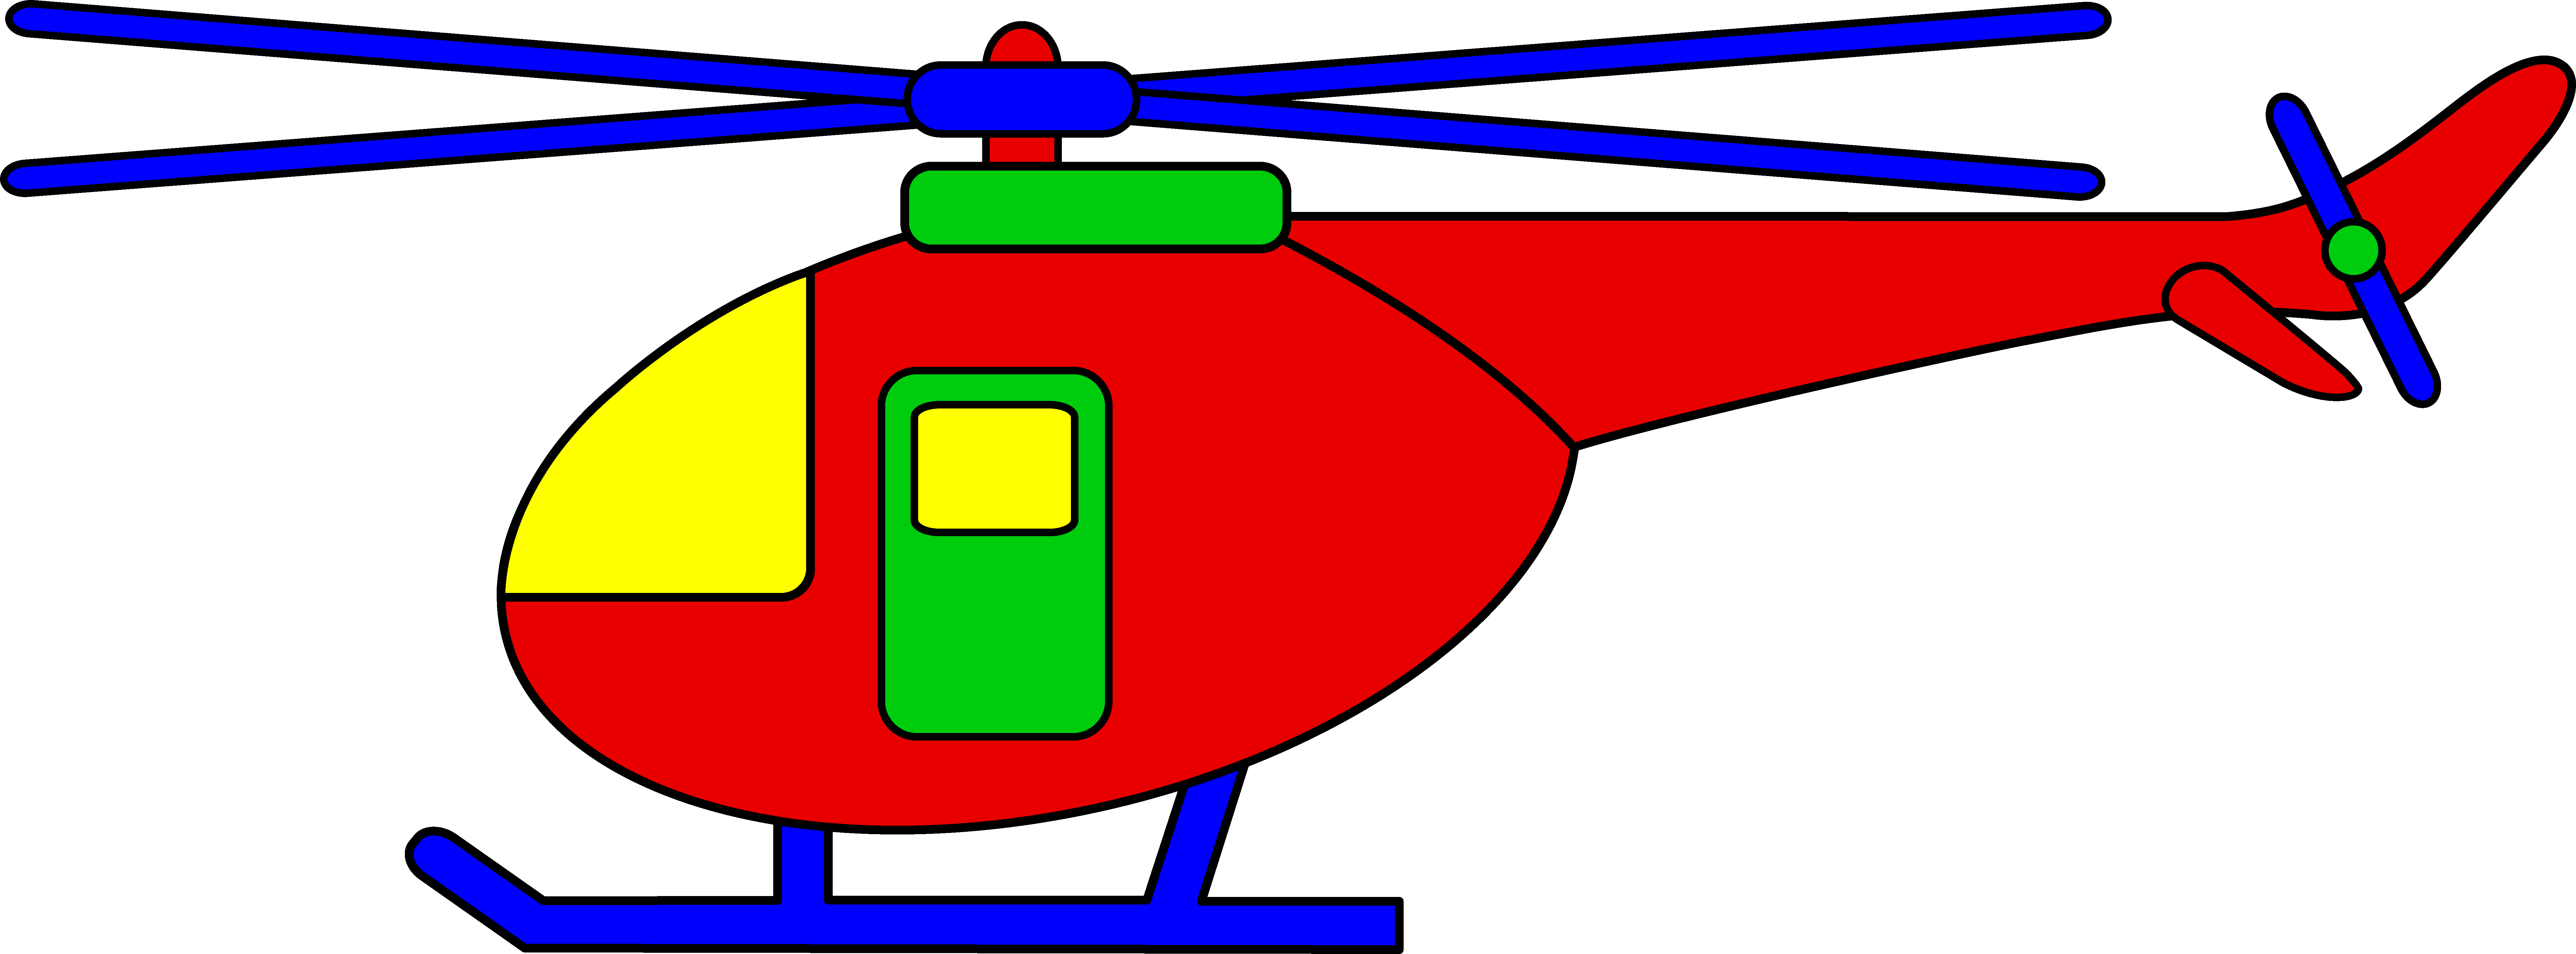 Police helicopter clipart 20 free Cliparts.